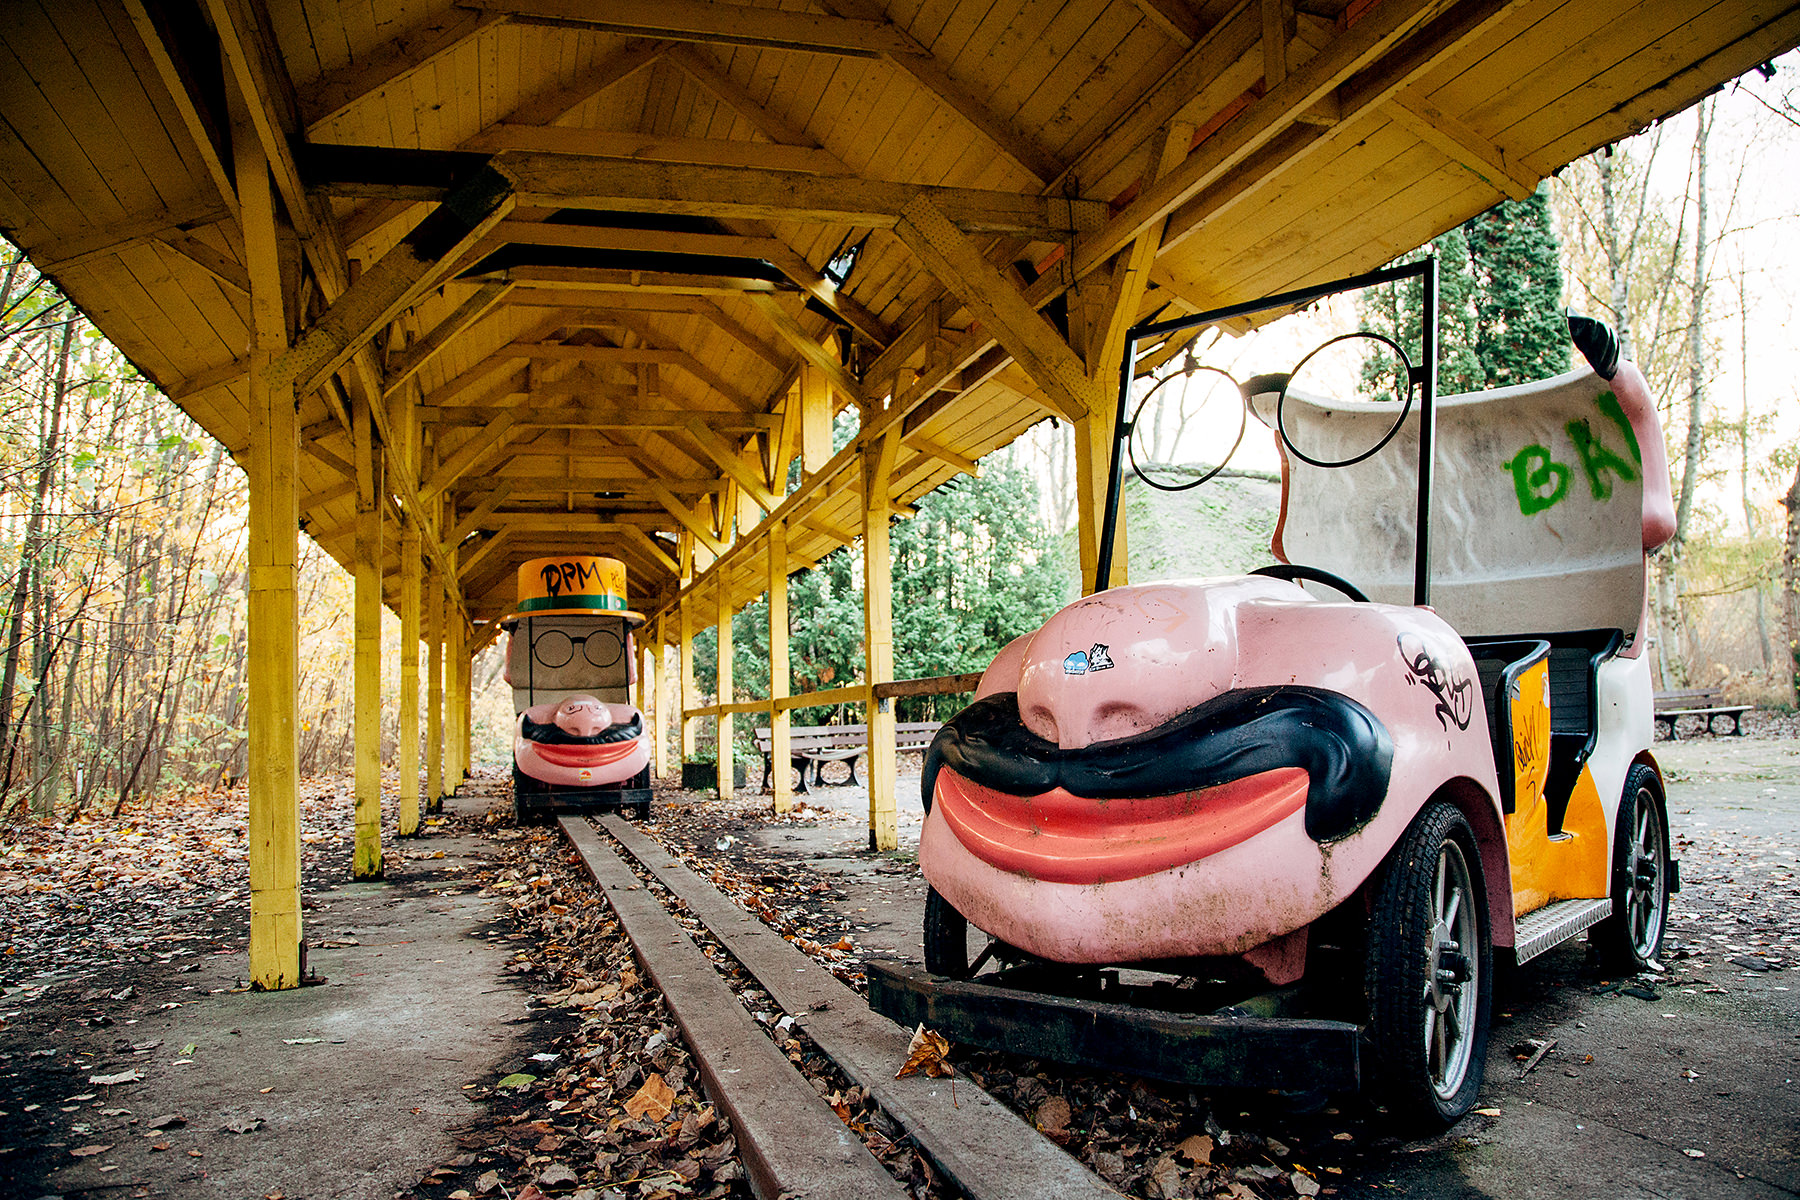 04 Spreepark Berlin Urbex Abandoned Photography